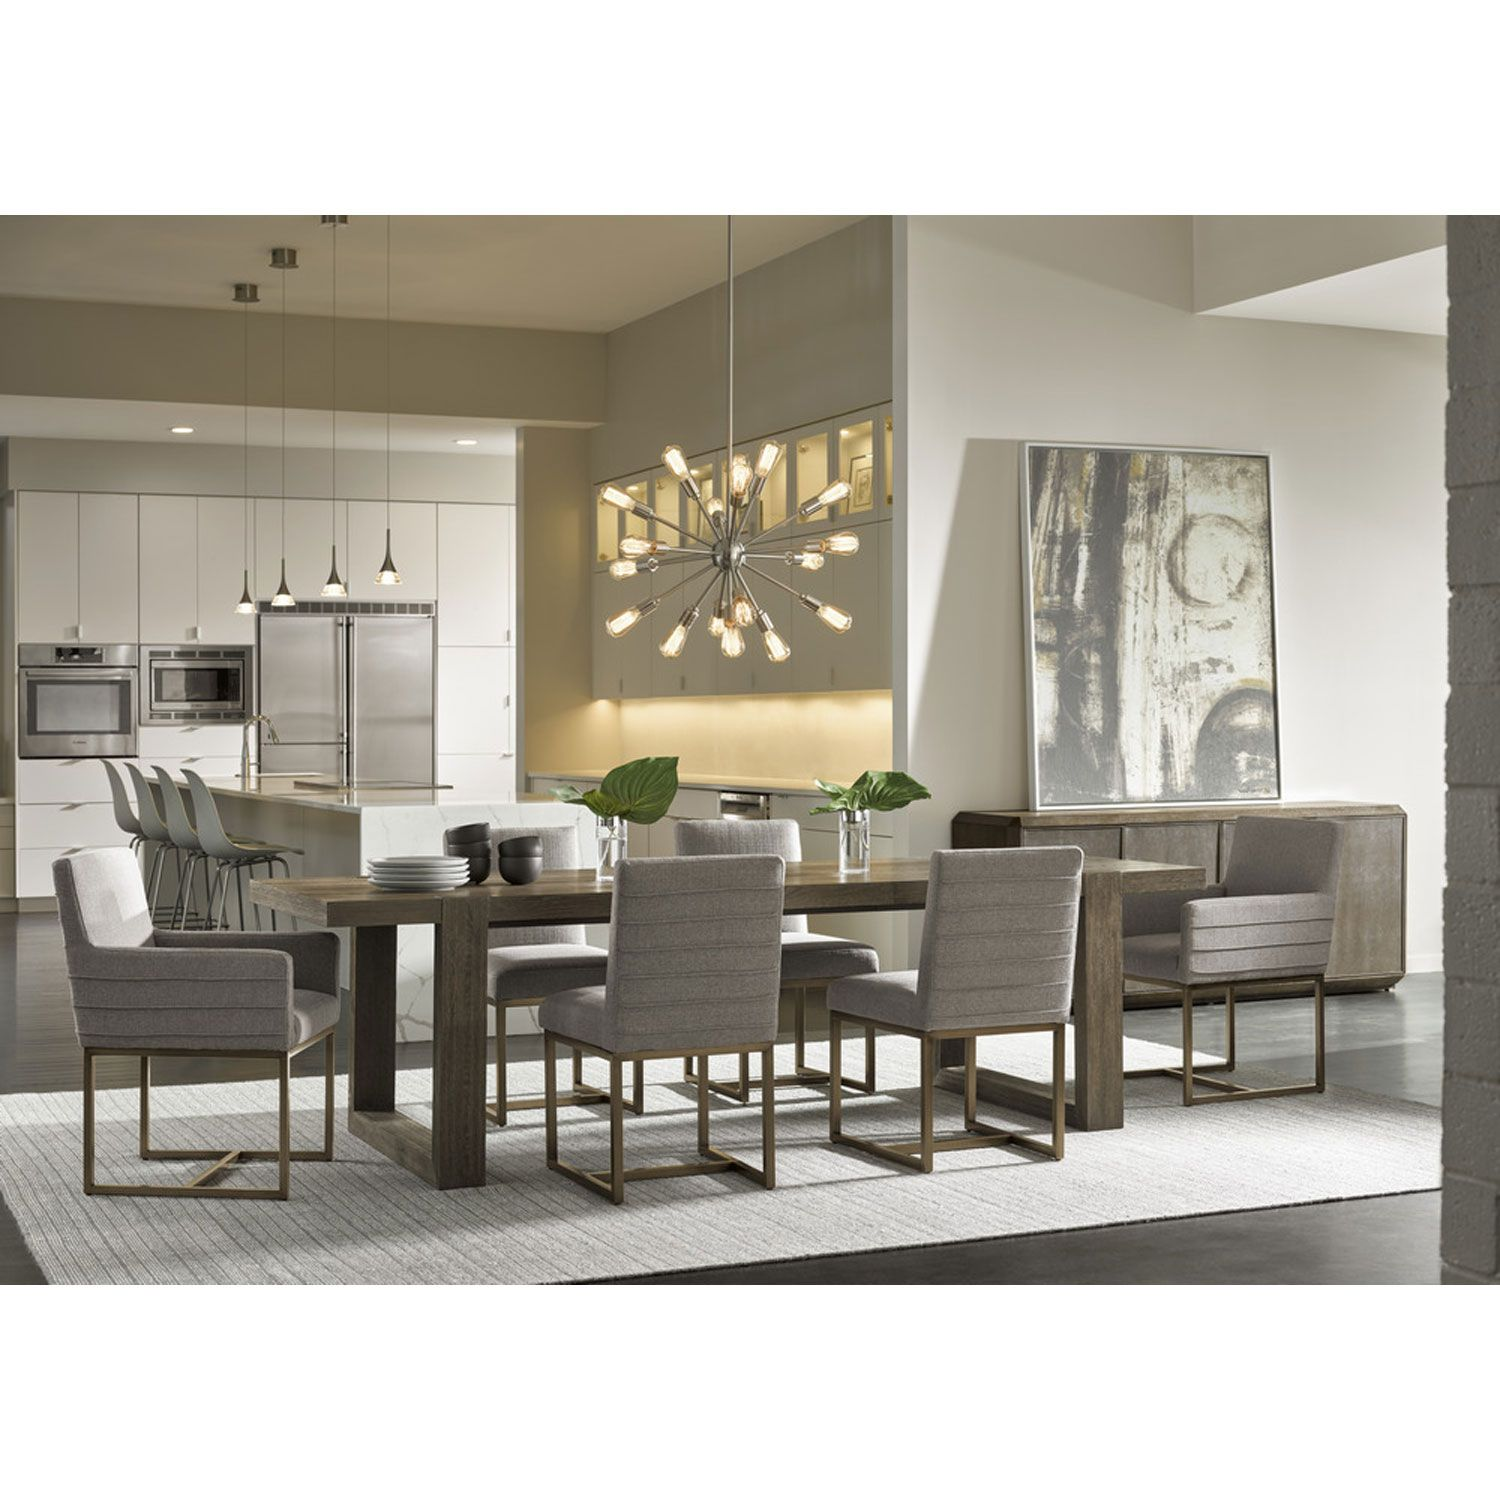 12 Best Universal Modern images  Furniture, Home, Home decor